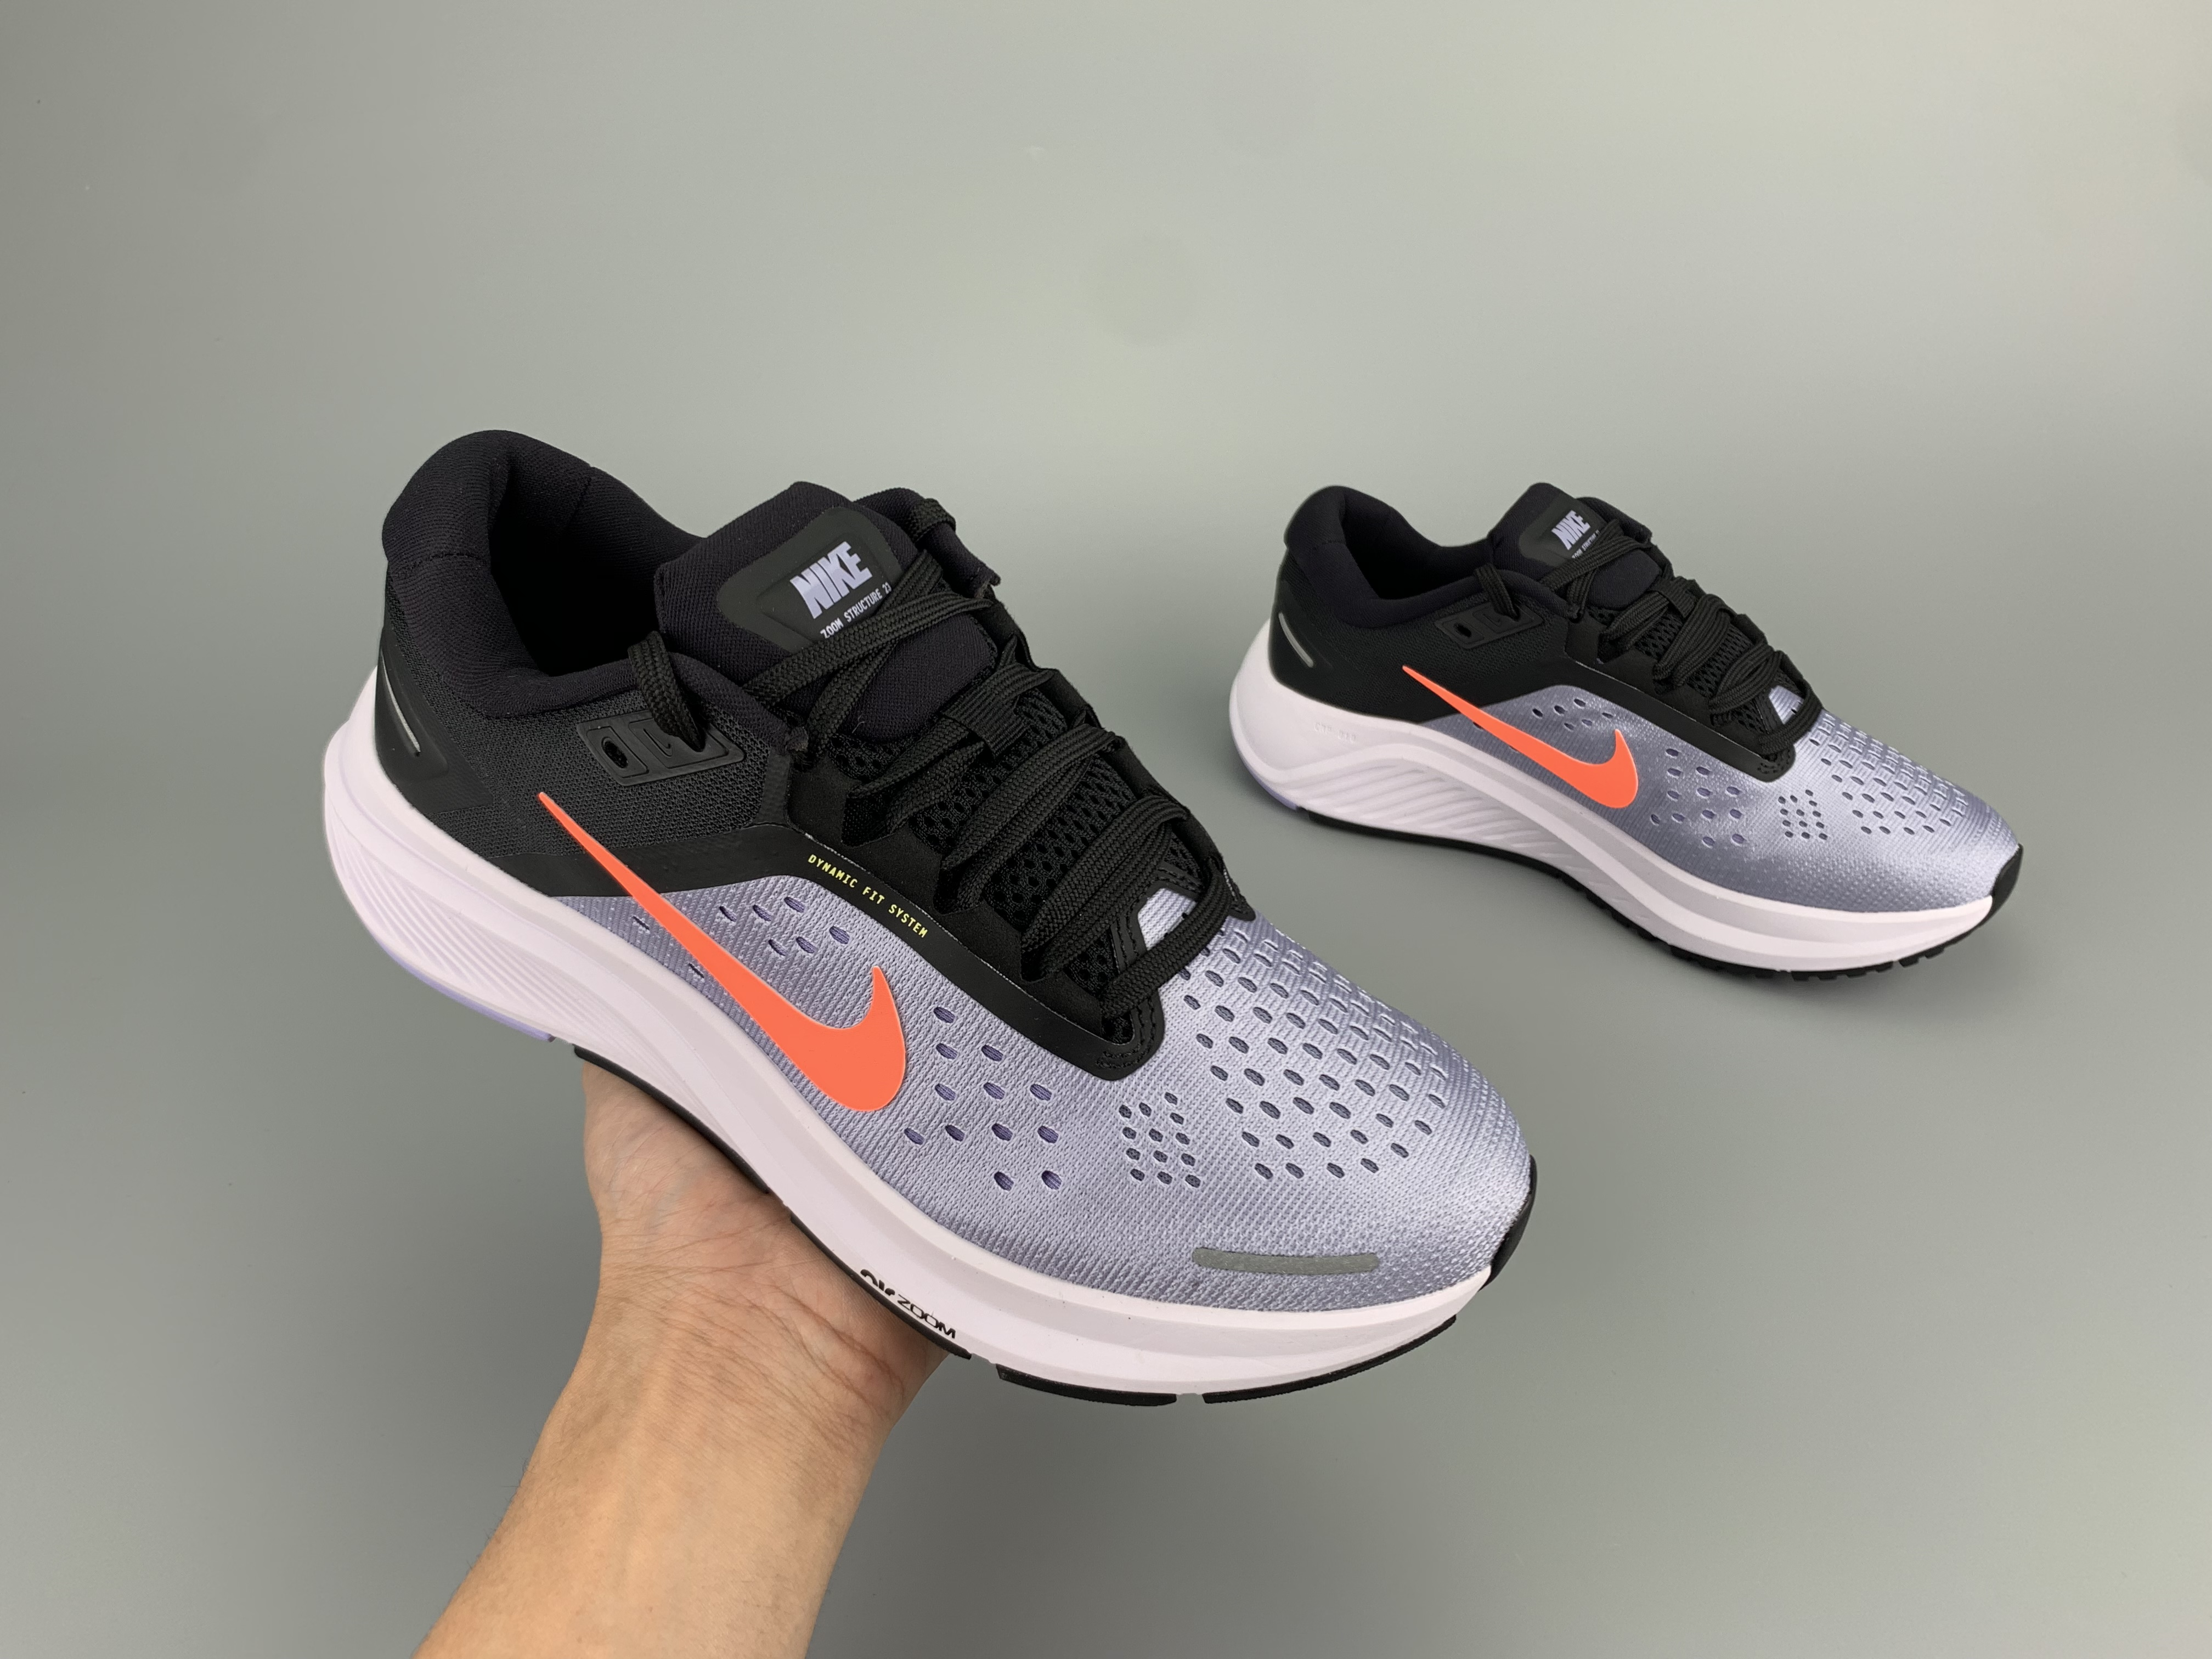 2020 Men Nike Zoom Structure 23 Silver Grey Black Orange Running Shoes